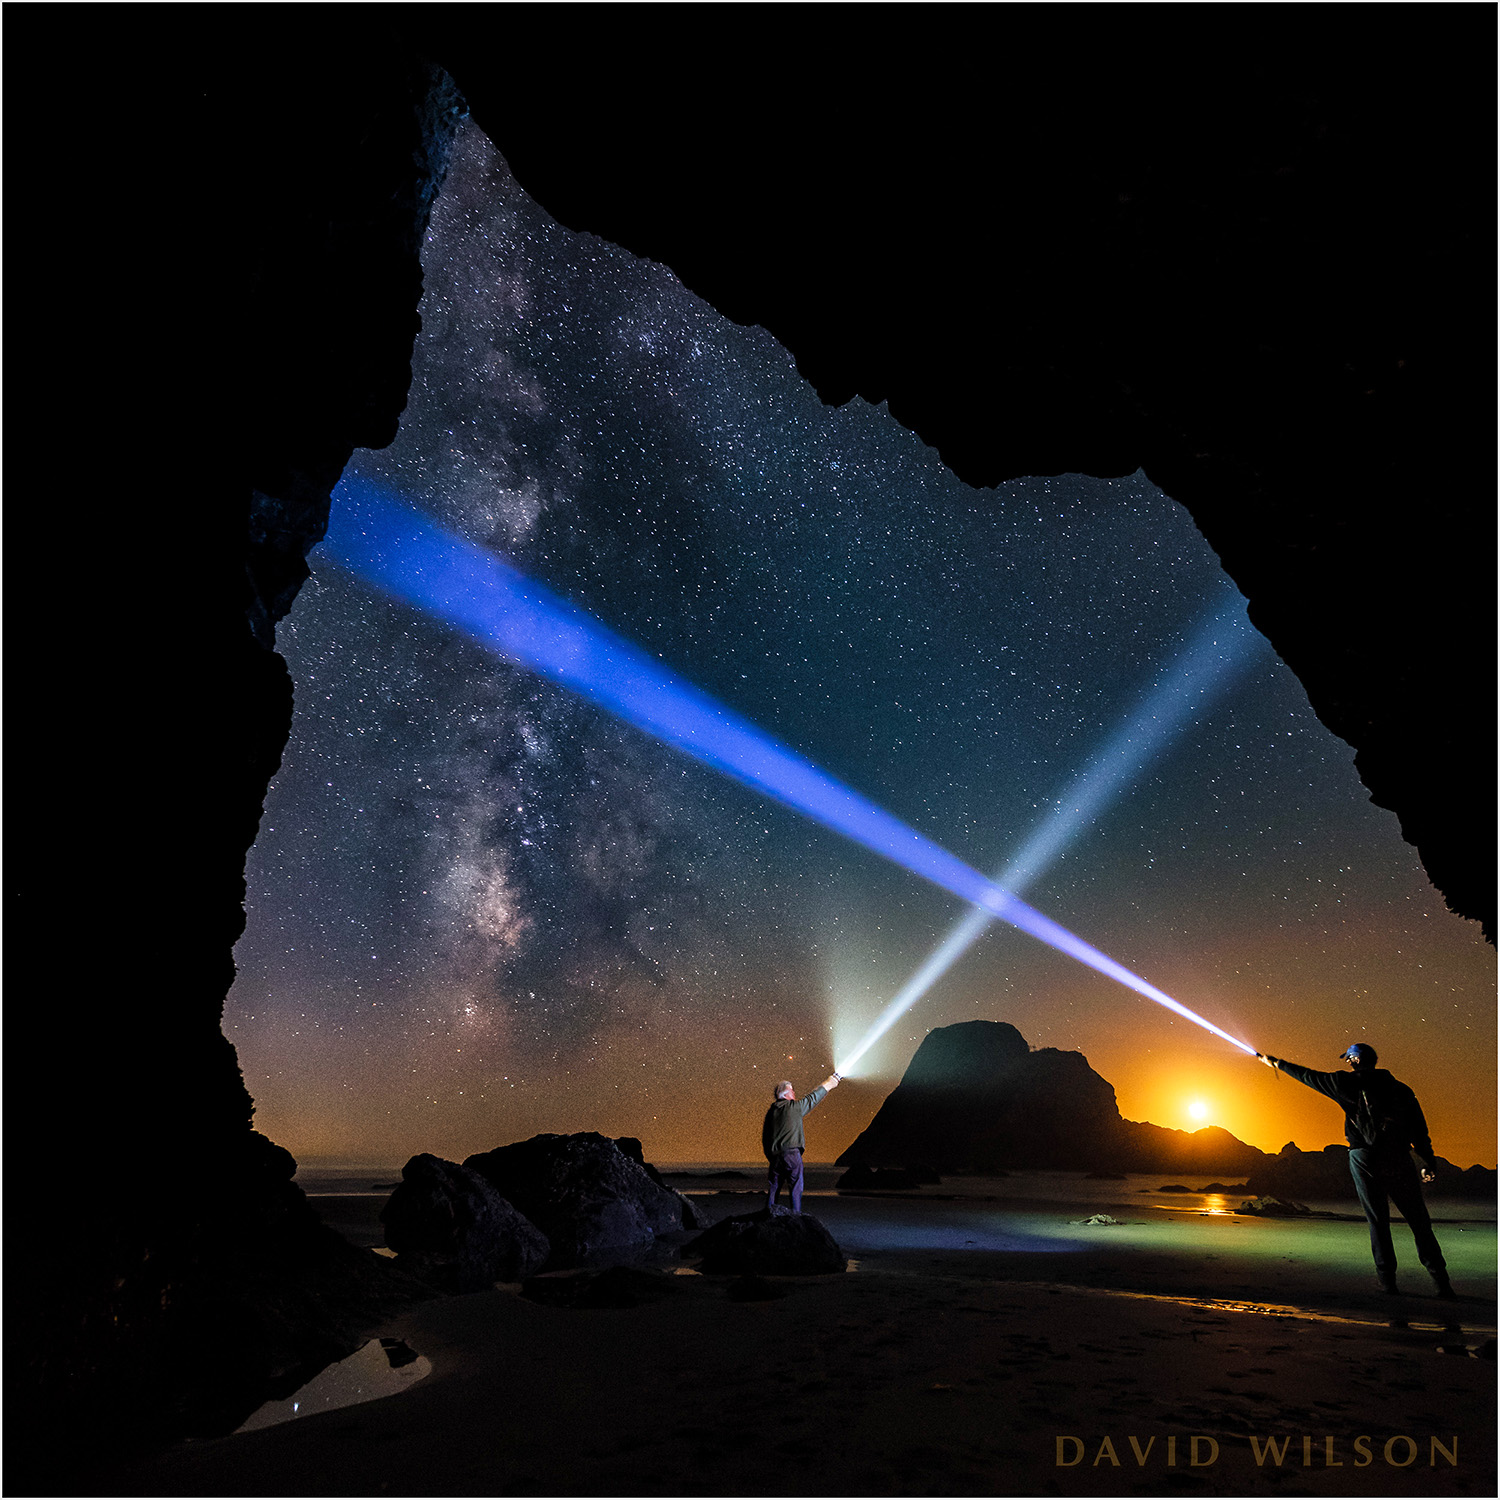 The Milky Way rises from the horizon near the glow of setting crescent moon outside of this hidden cave near Camel Rock, Humboldt County, California, while my brother and I play with our light beams. September 13, 2018.